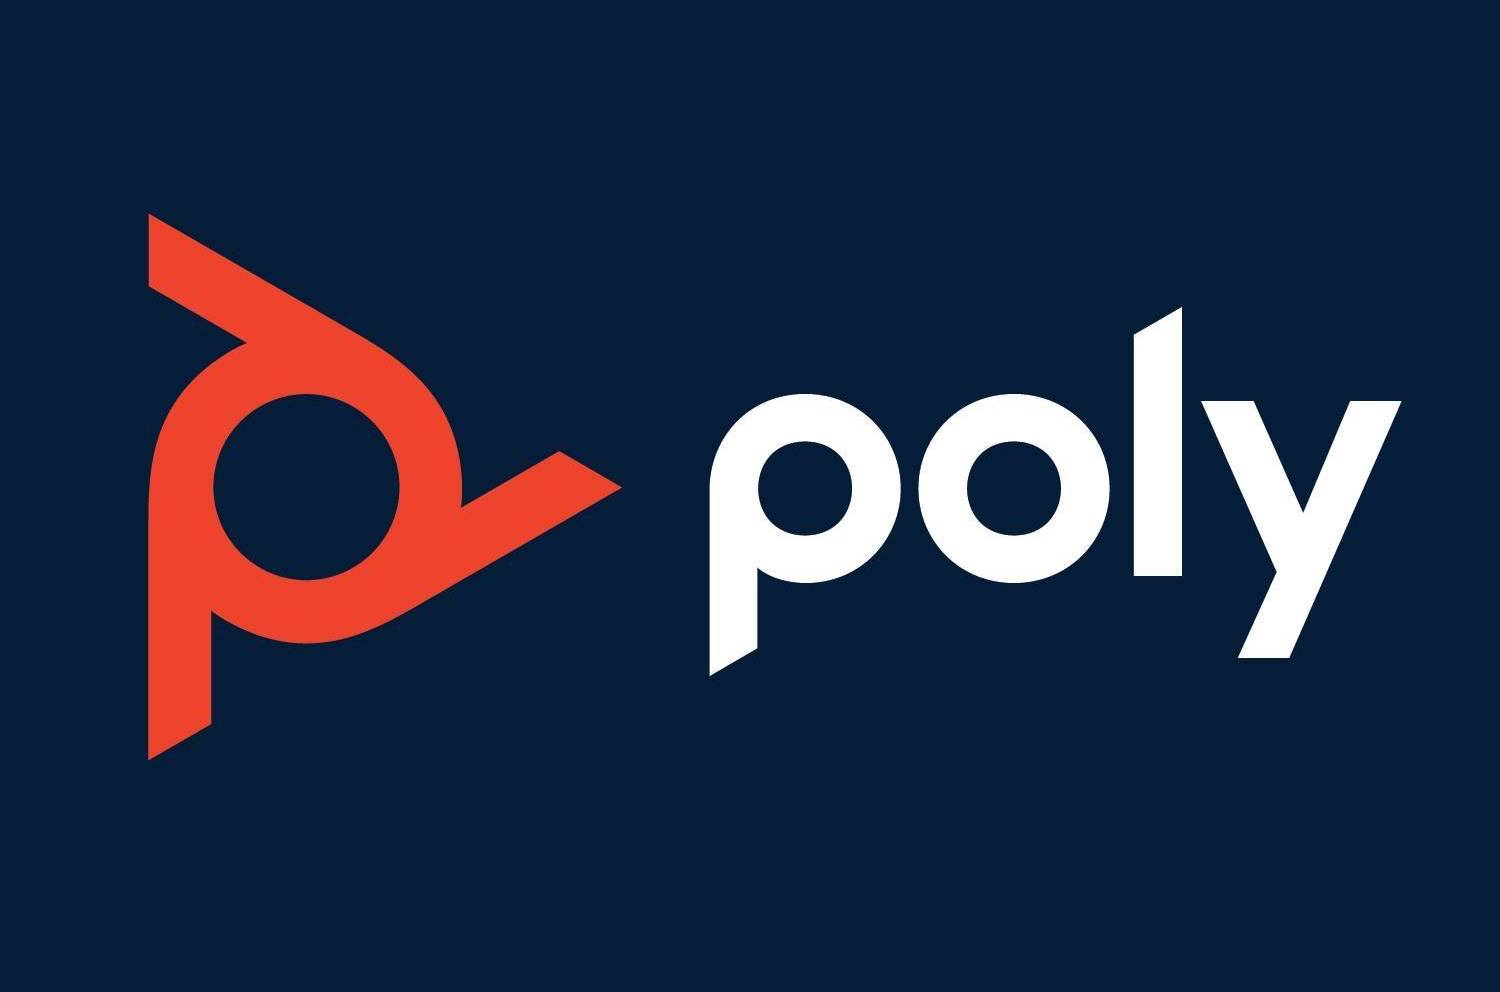 Rove, Poly